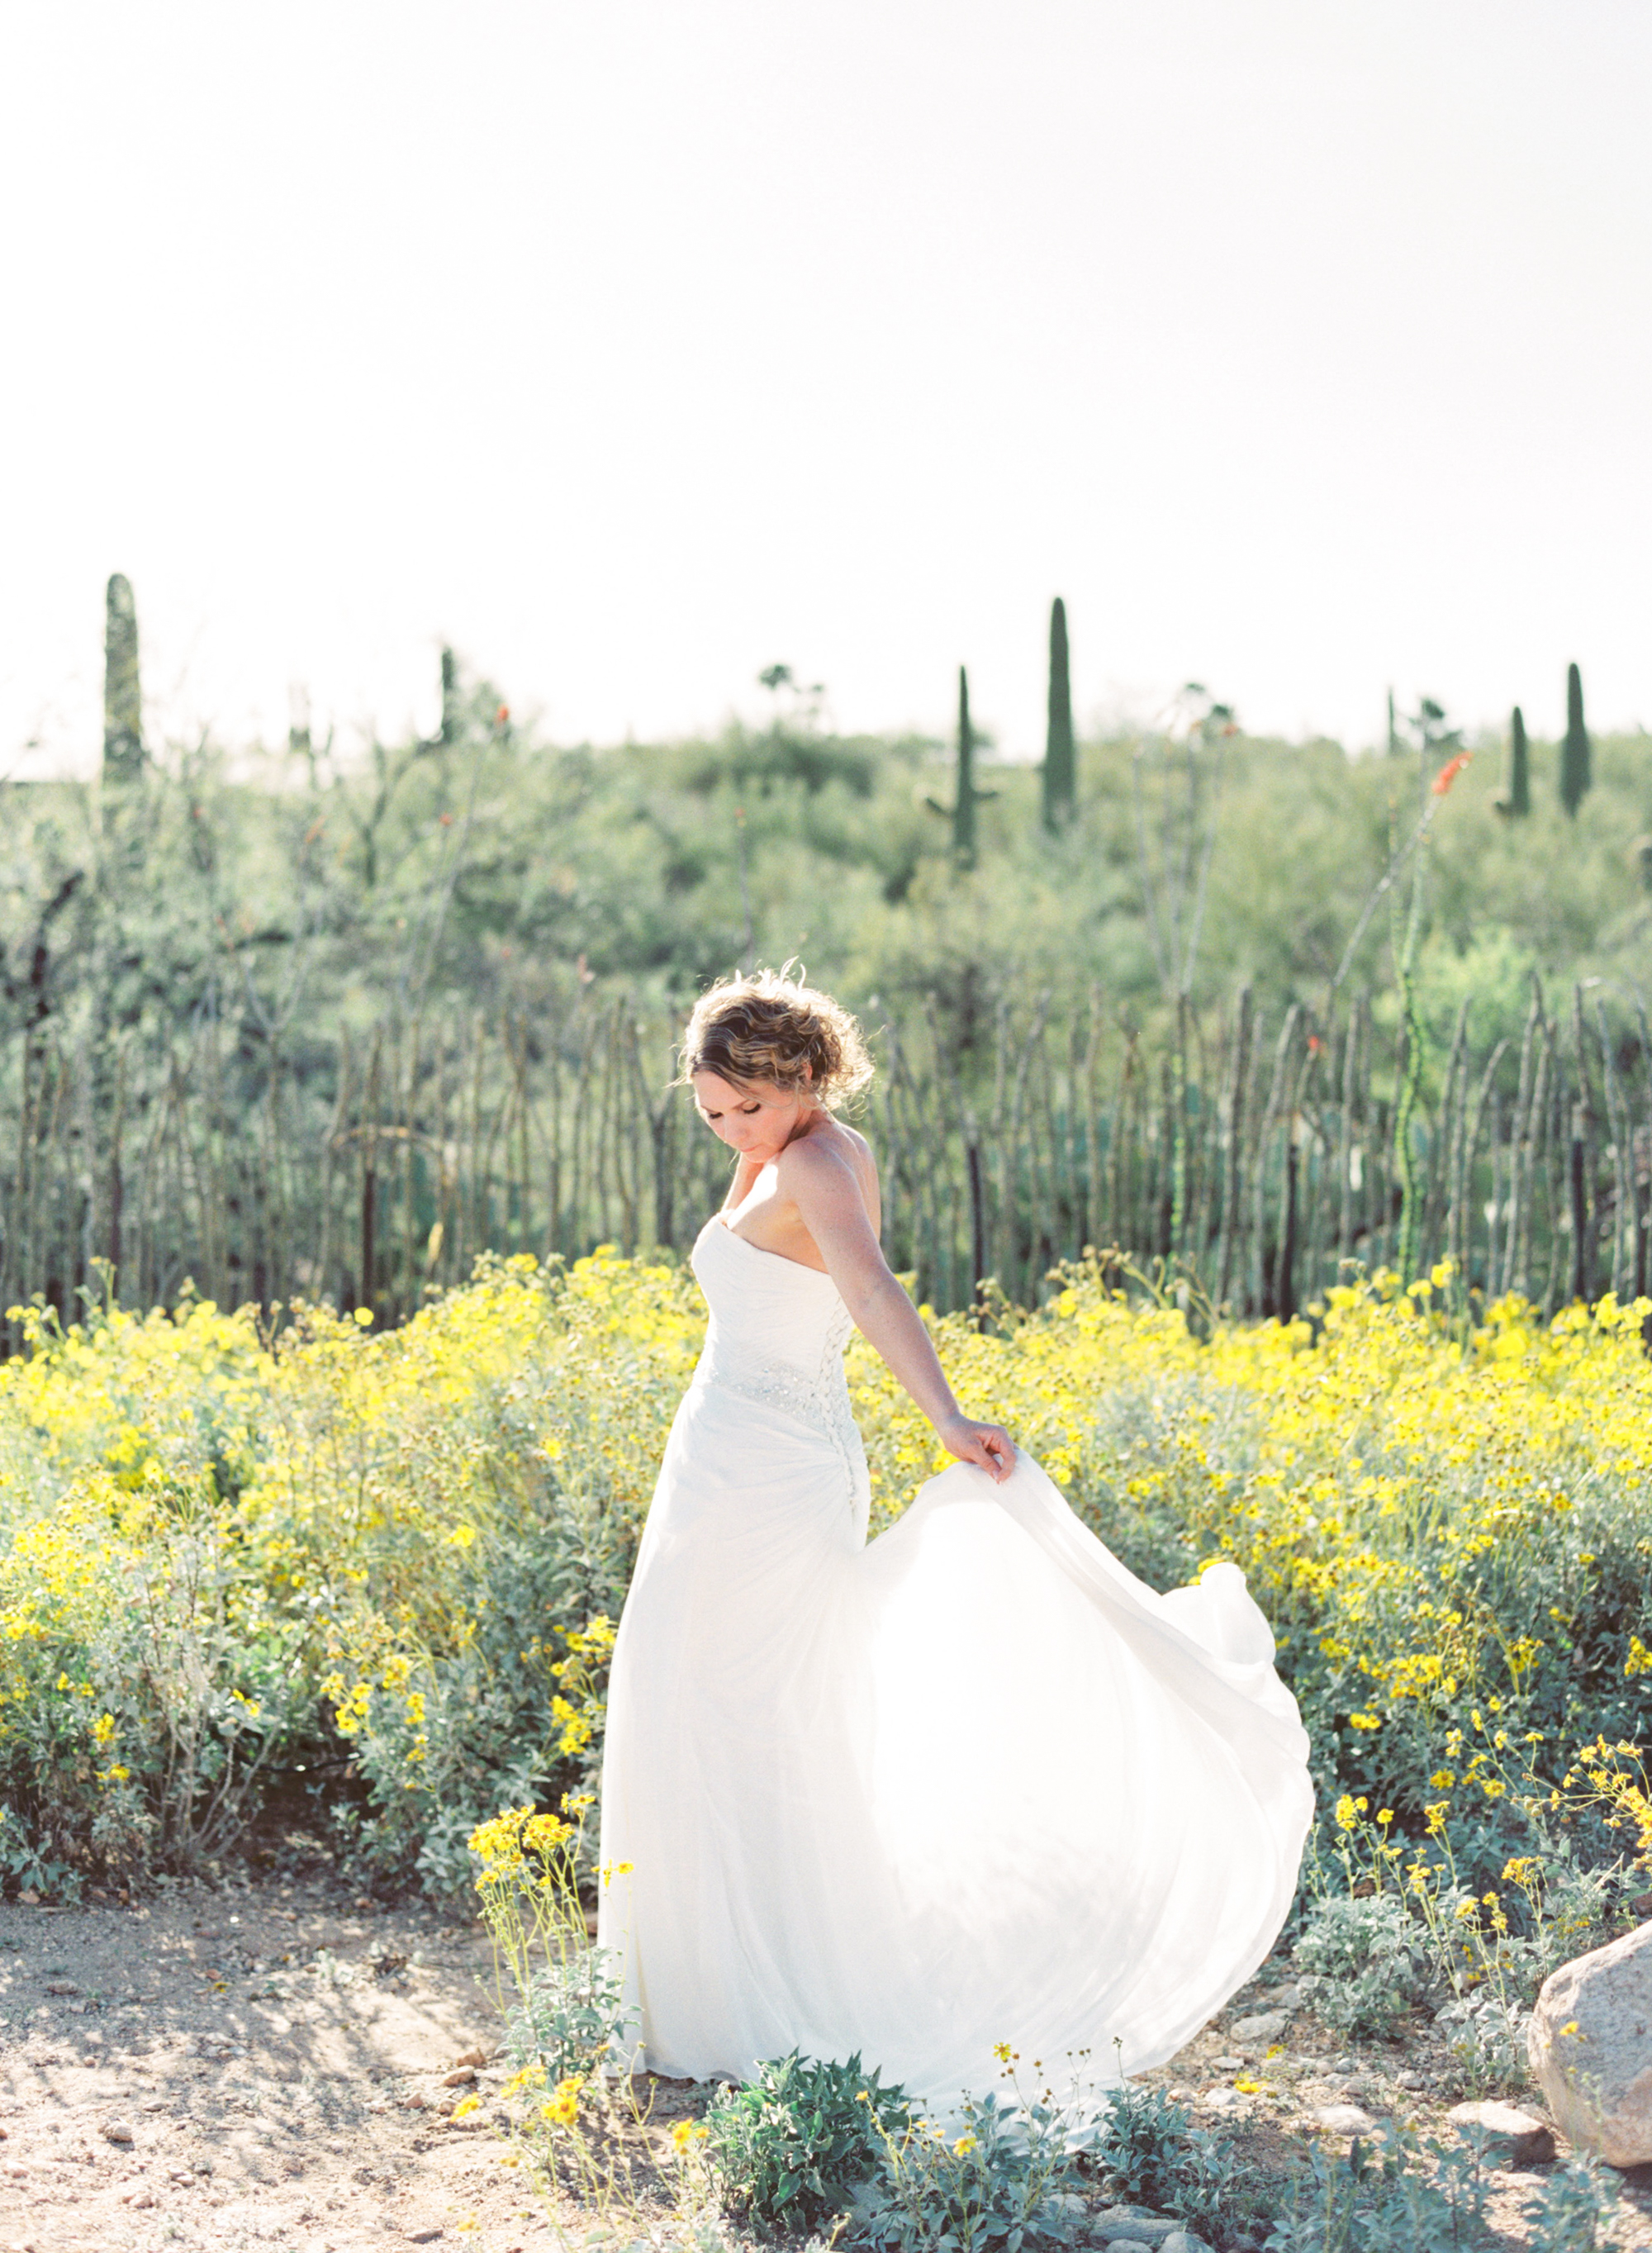 Bride in Tucson wildflowers